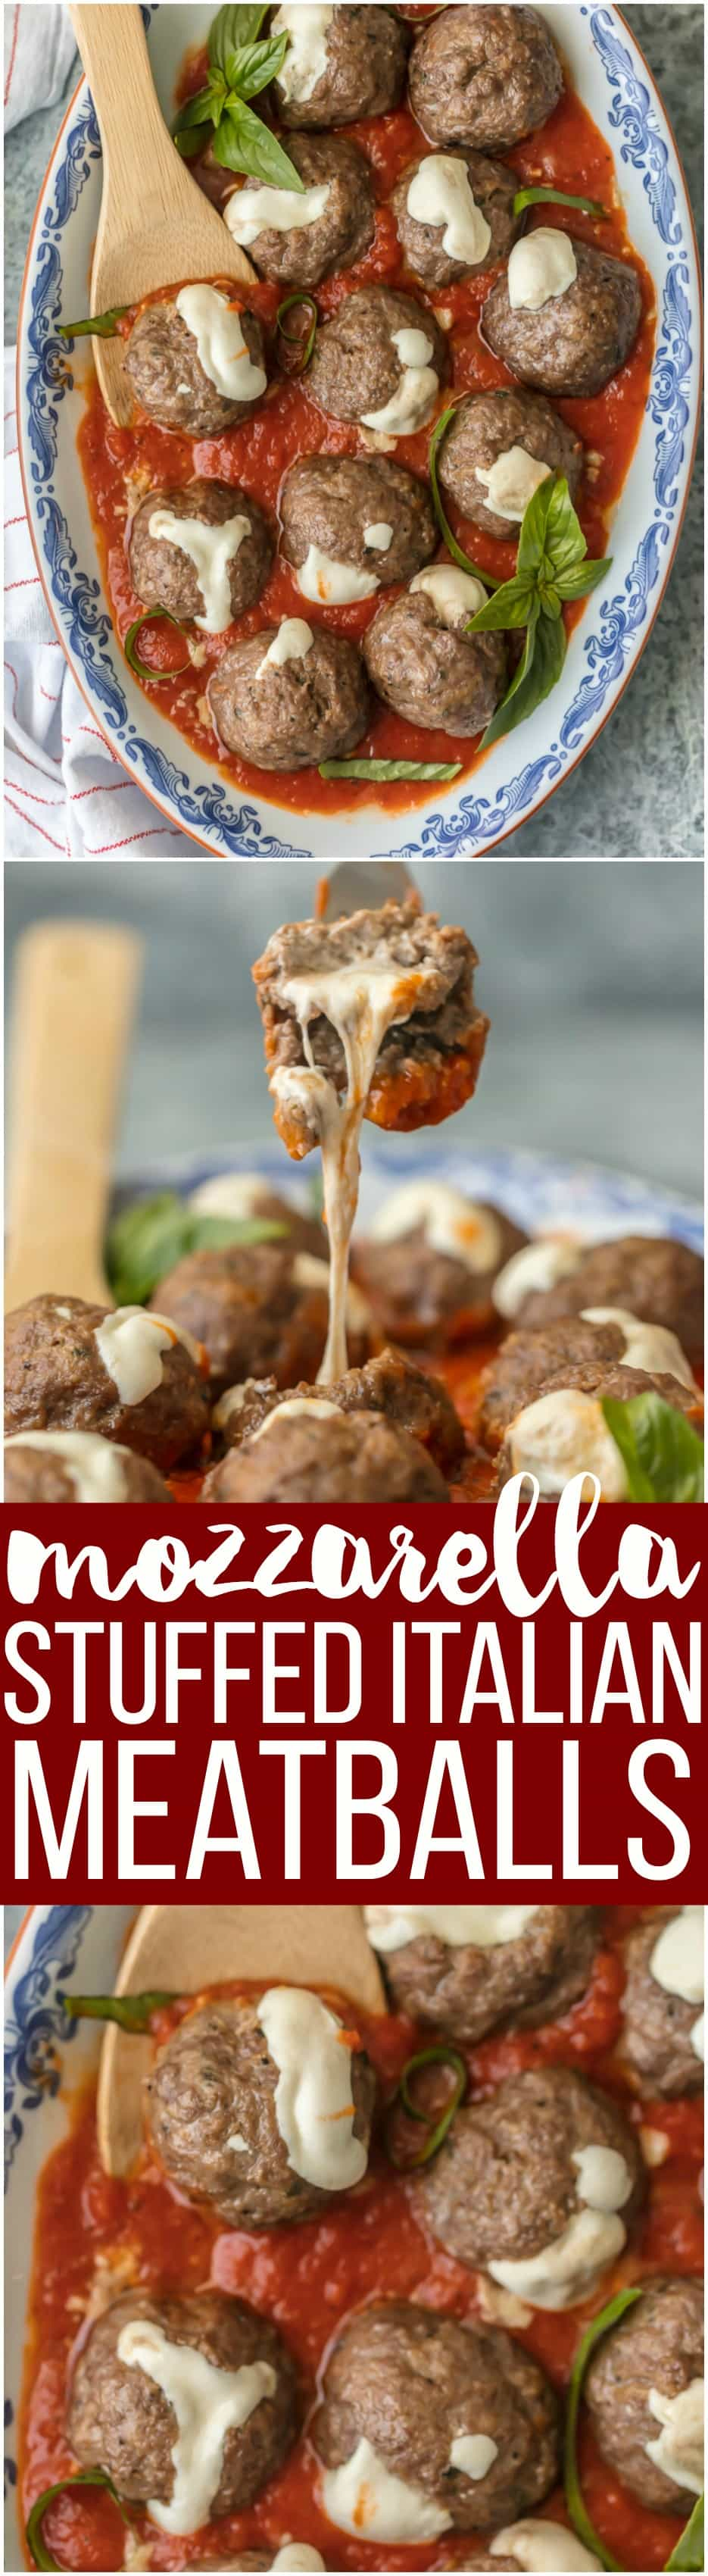 These MOZZARELLA STUFFED ITALIAN MEATBALLS are the ultimate appetizer. Stuffed with whole milk mozzarella and oh so juicy and tender, you better make a double batch.